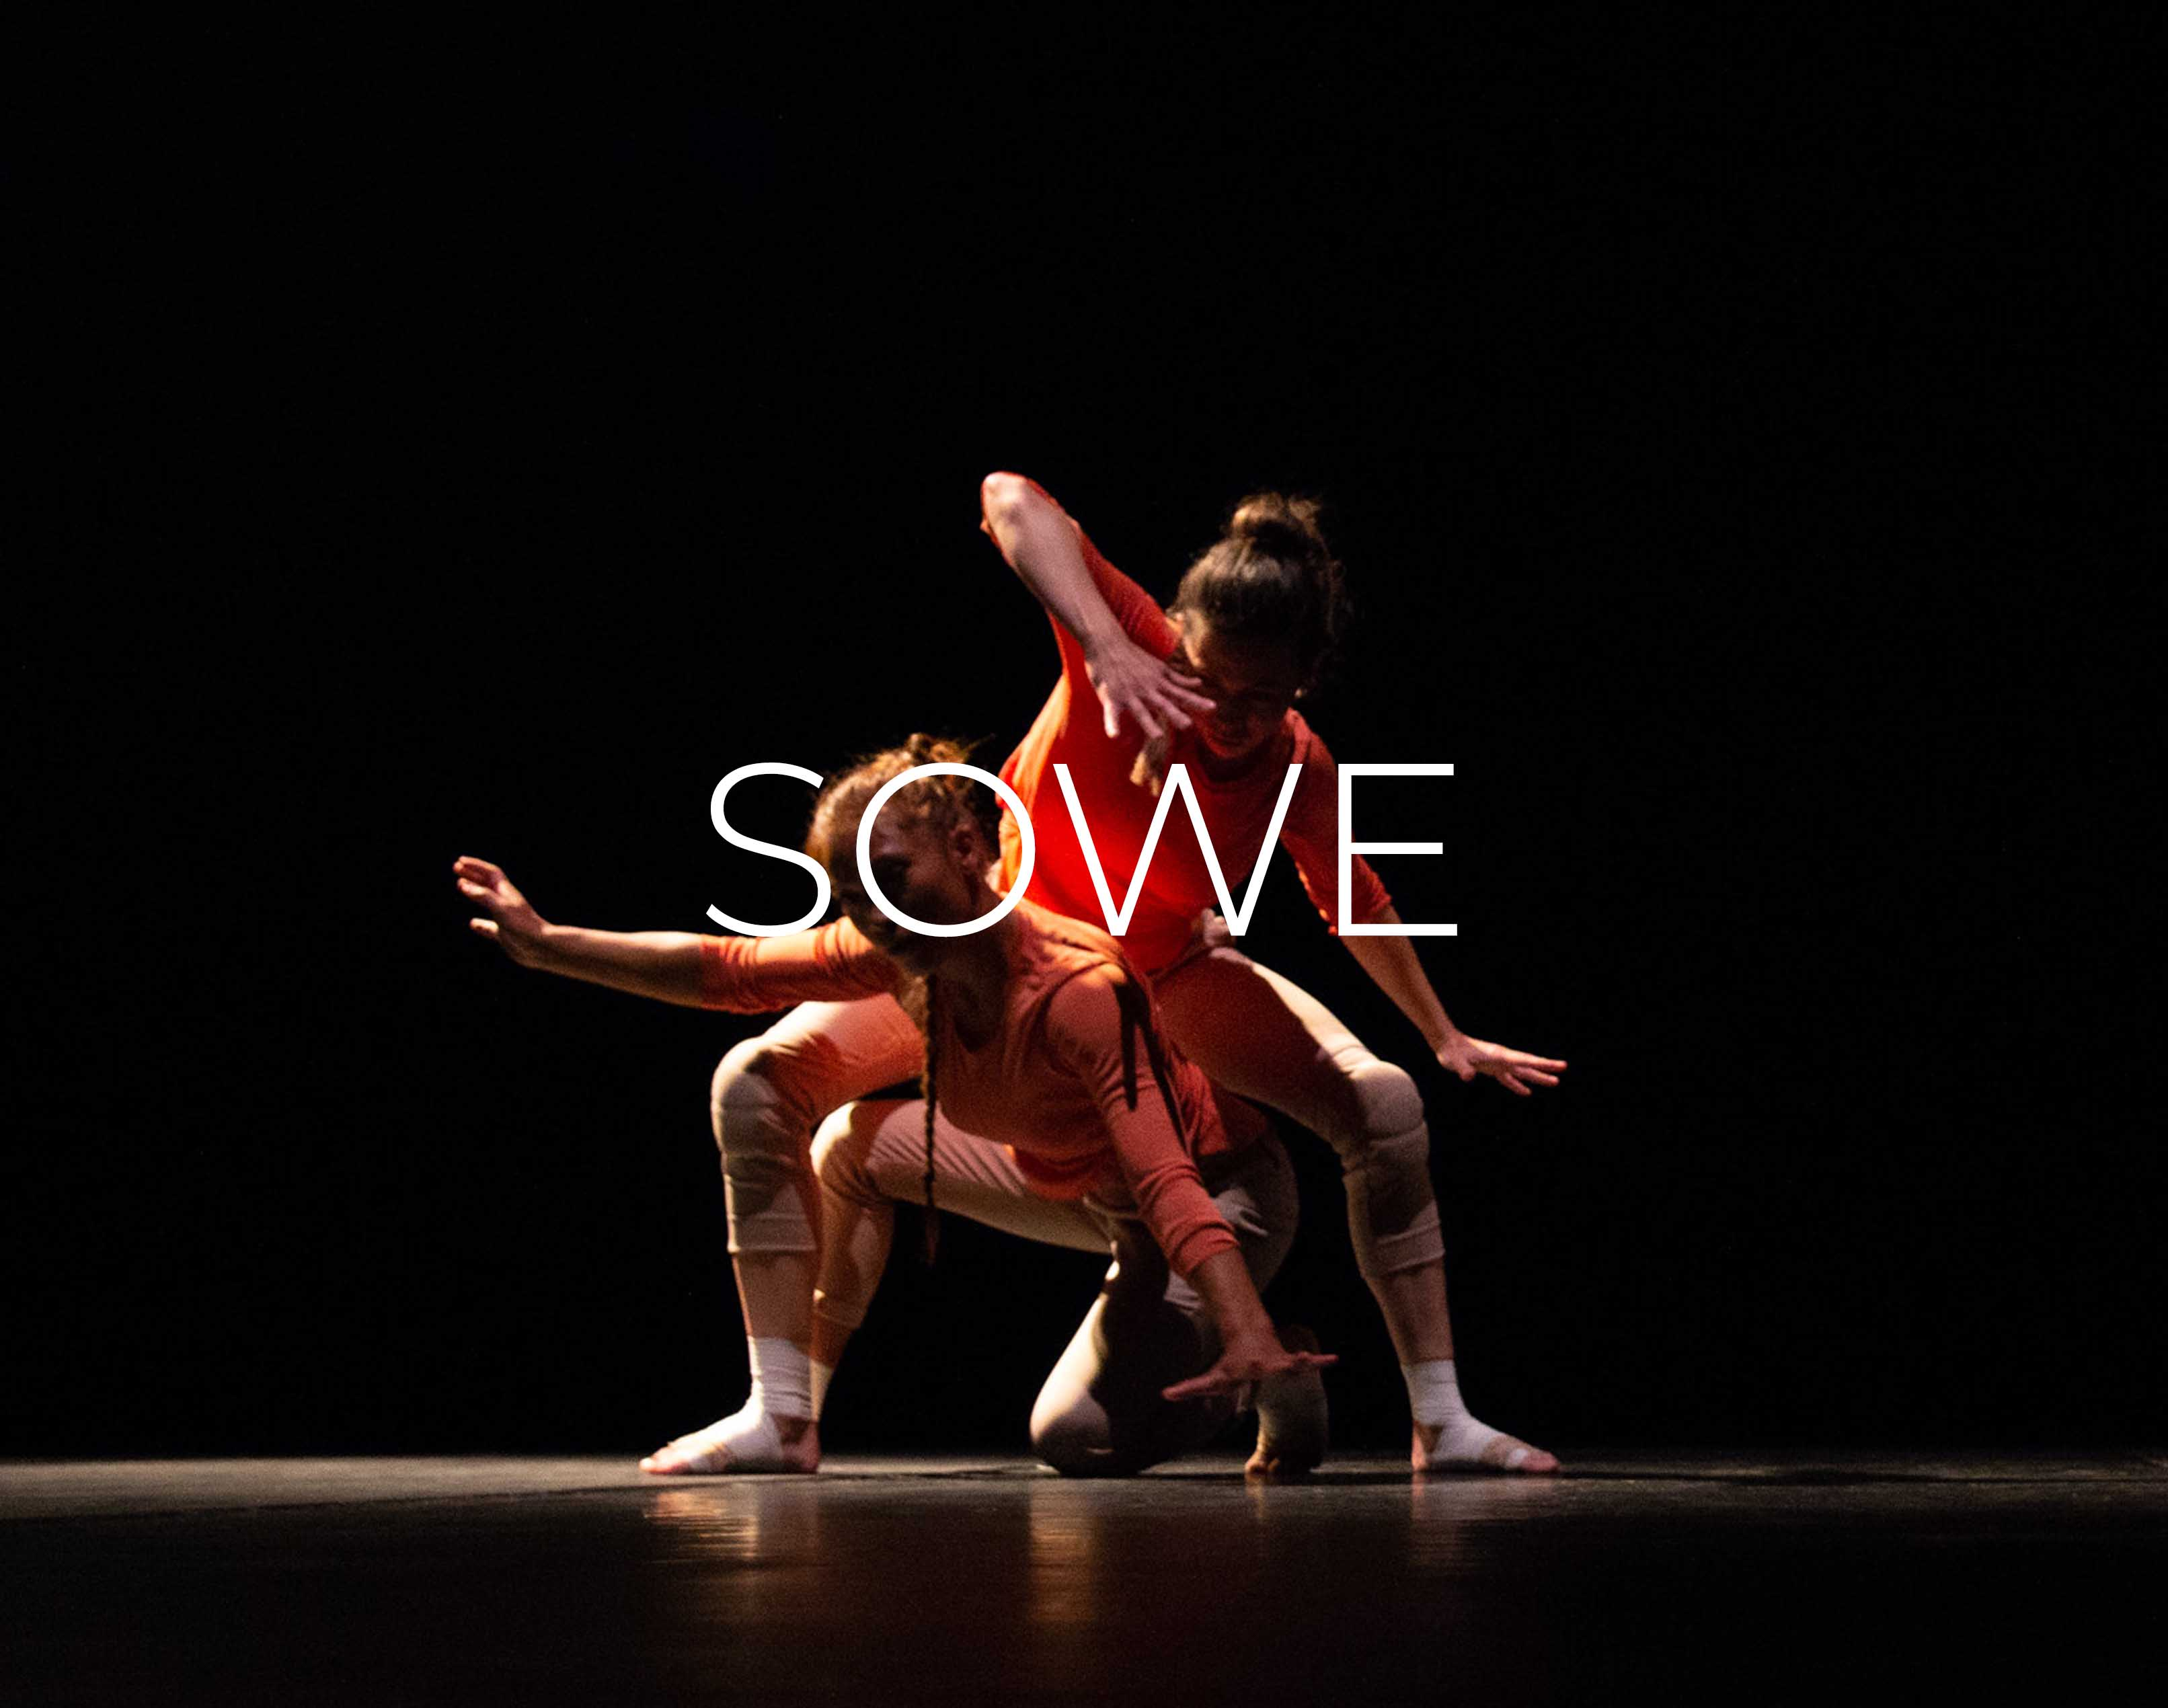 SOWE-cover